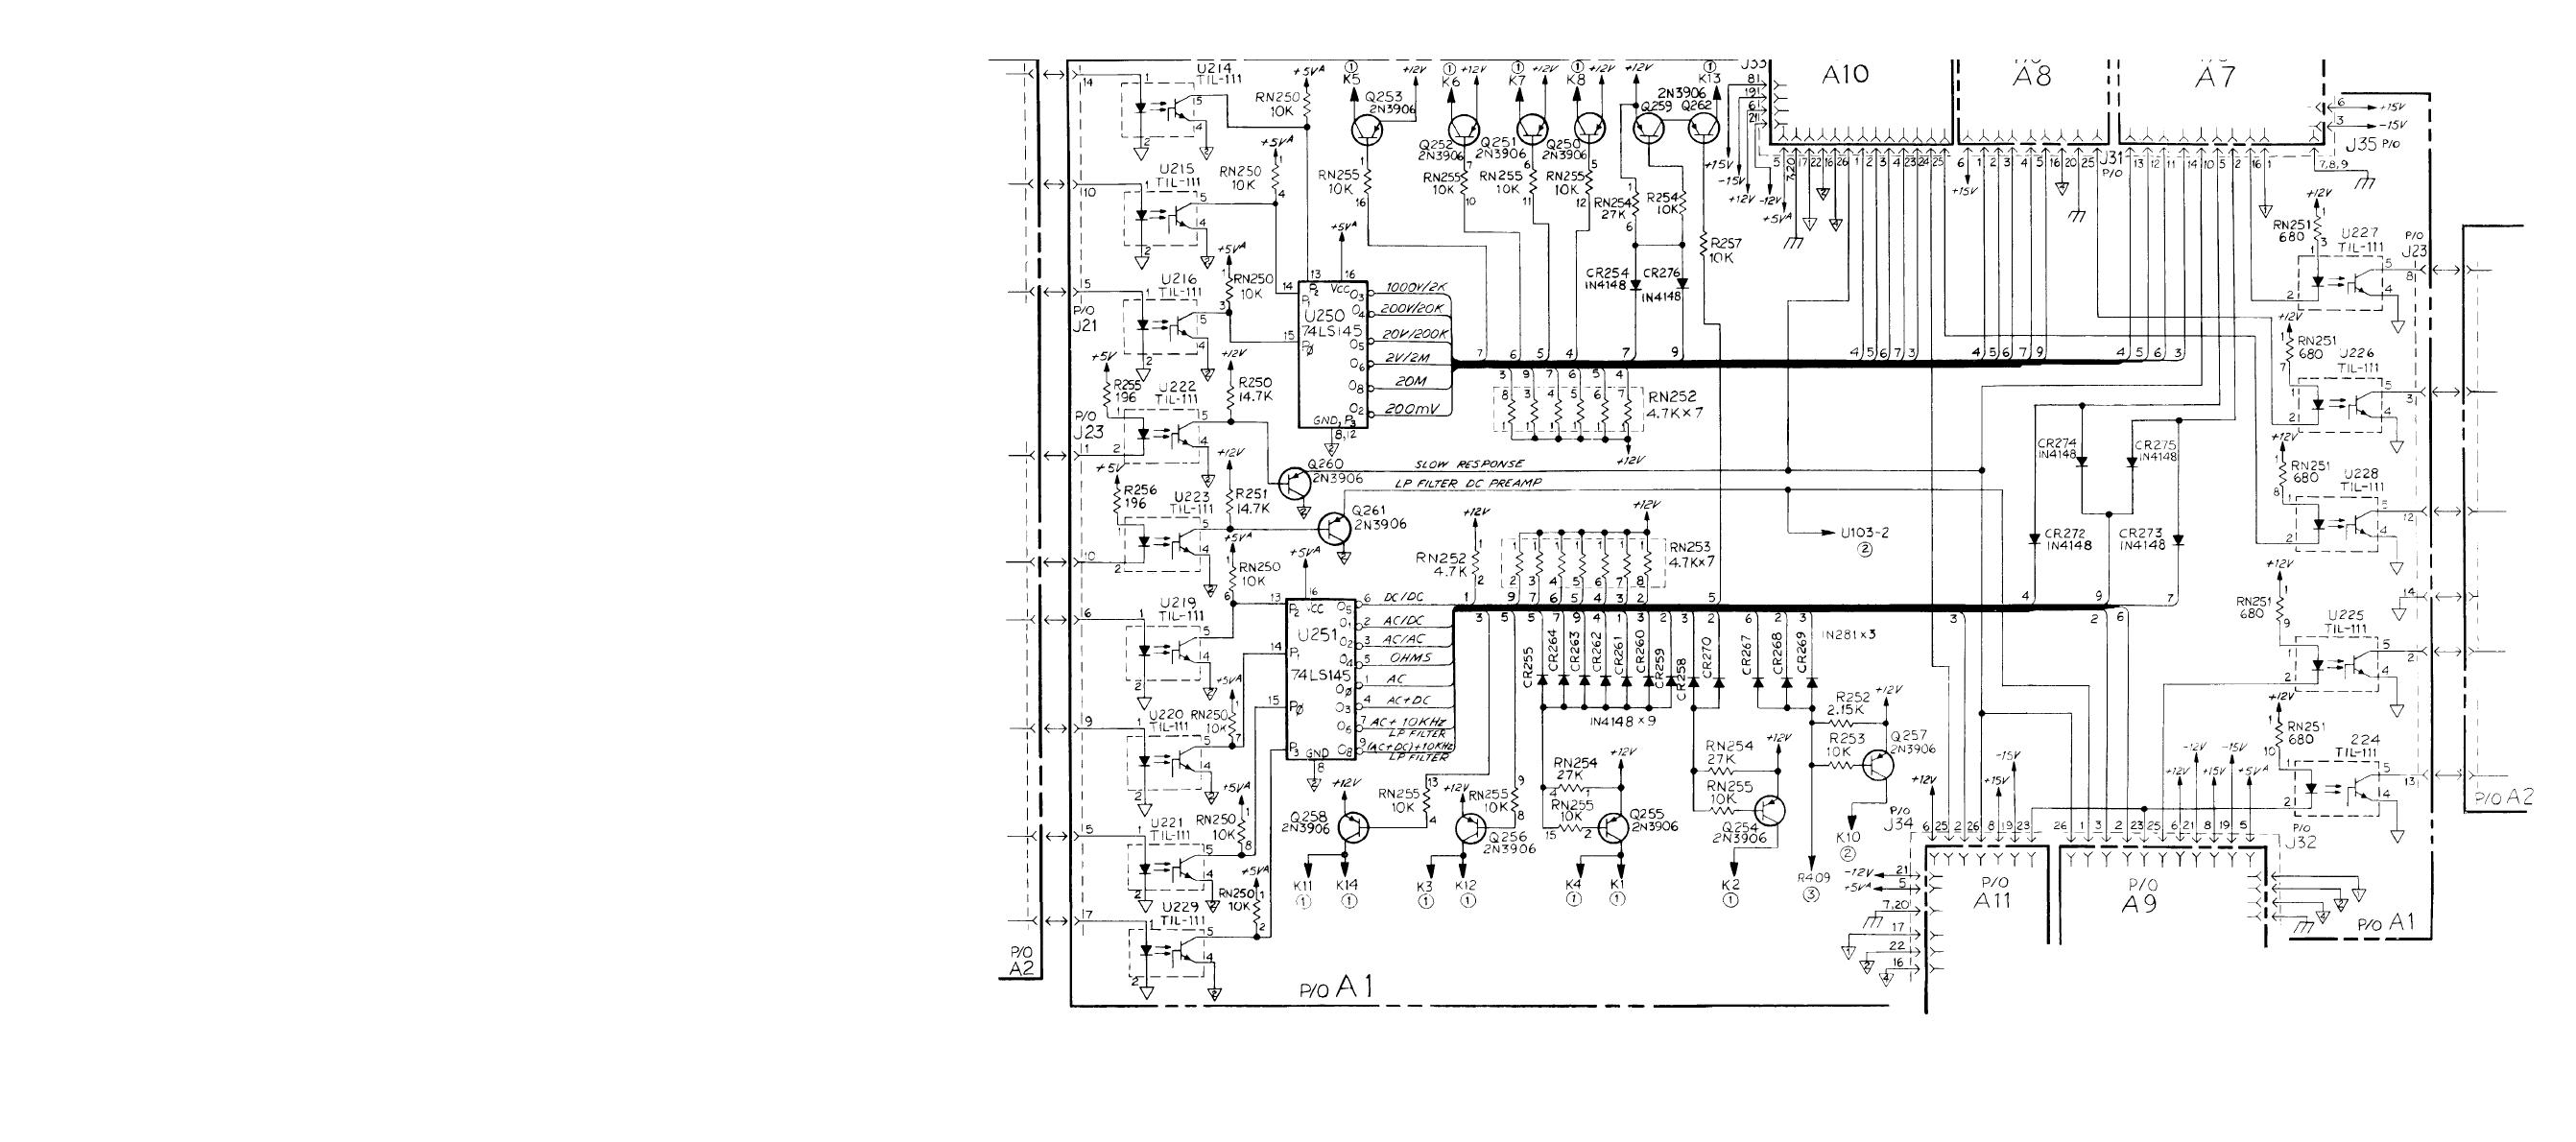 Figure Fo 6 Relay Switching Circuits A1 Schematic Diagram